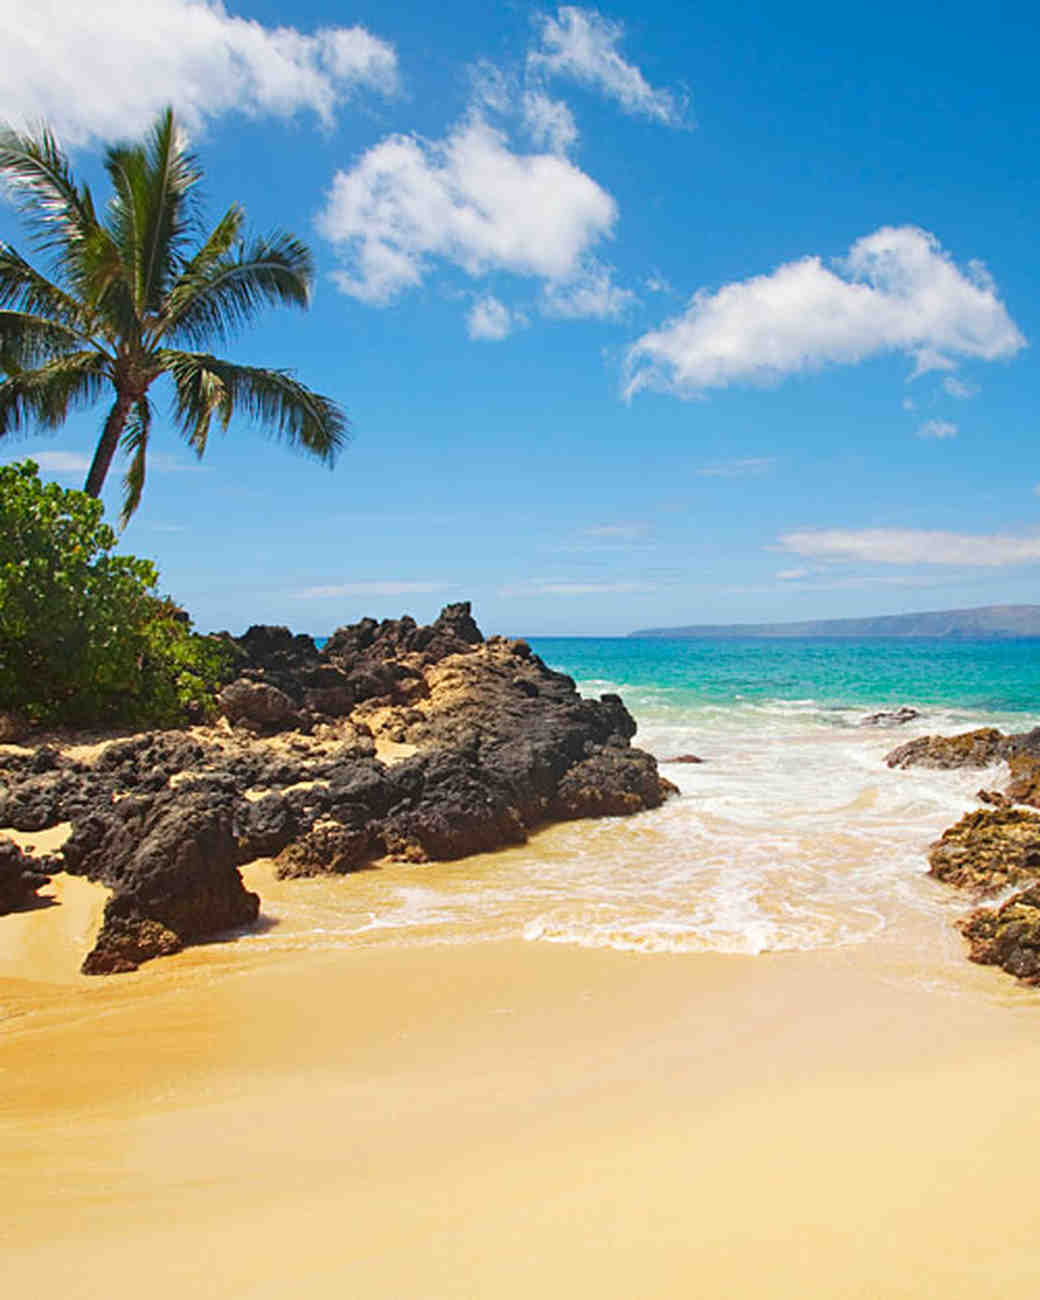 Maui Hawaii Beaches: The Best Beaches In Hawaii